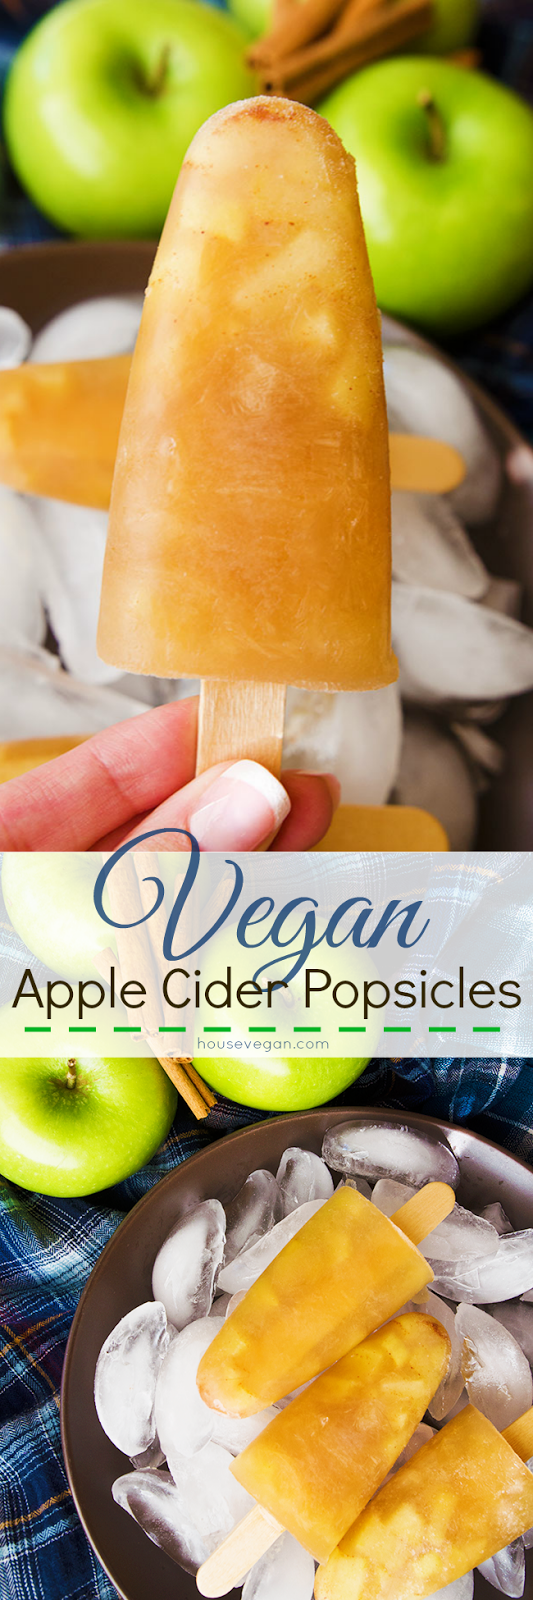 apple cider popsicle recipe, apple cider popsicles, apple cider popsicle recipe, apple cider popsicles, apple cinnamon popsicle, apple fruit popsicles, apple juice popsicles, apple juice popsicles recipe, apple pie popsicle recipe, apple popsicle sticks, apple popsicles, apple popsicles recipe, diy apple juice popsicles, green apple popsicle recipe, green apple popsicles, homemade apple popsicles, popsicles apple juice, popsicles from apple juice, popsicles with apple juice, fall popsicles, easy vegan fall desserts, vegan autumn desserts, vegan fall desserts, vegan gluten free fall desserts, best vegan fall desserts, easy vegan fall desserts, healthy vegan fall desserts, healthy vegan fall recipes, vegan desserts for fall, vegan fall baking, vegan fall comfort food, vegan fall dessert recipes, vegan fall desserts, vegan fall food, vegan fall recipes, vegan fall treats, autumn vegan dishes, healthy vegan autumn recipes, vegan autumn desserts, vegan autumn food, vegan autumn recipes, vegan fall baking, vegan fall baking recipes, vegan fall dessert recipes, vegan fall desserts, vegan in autumn